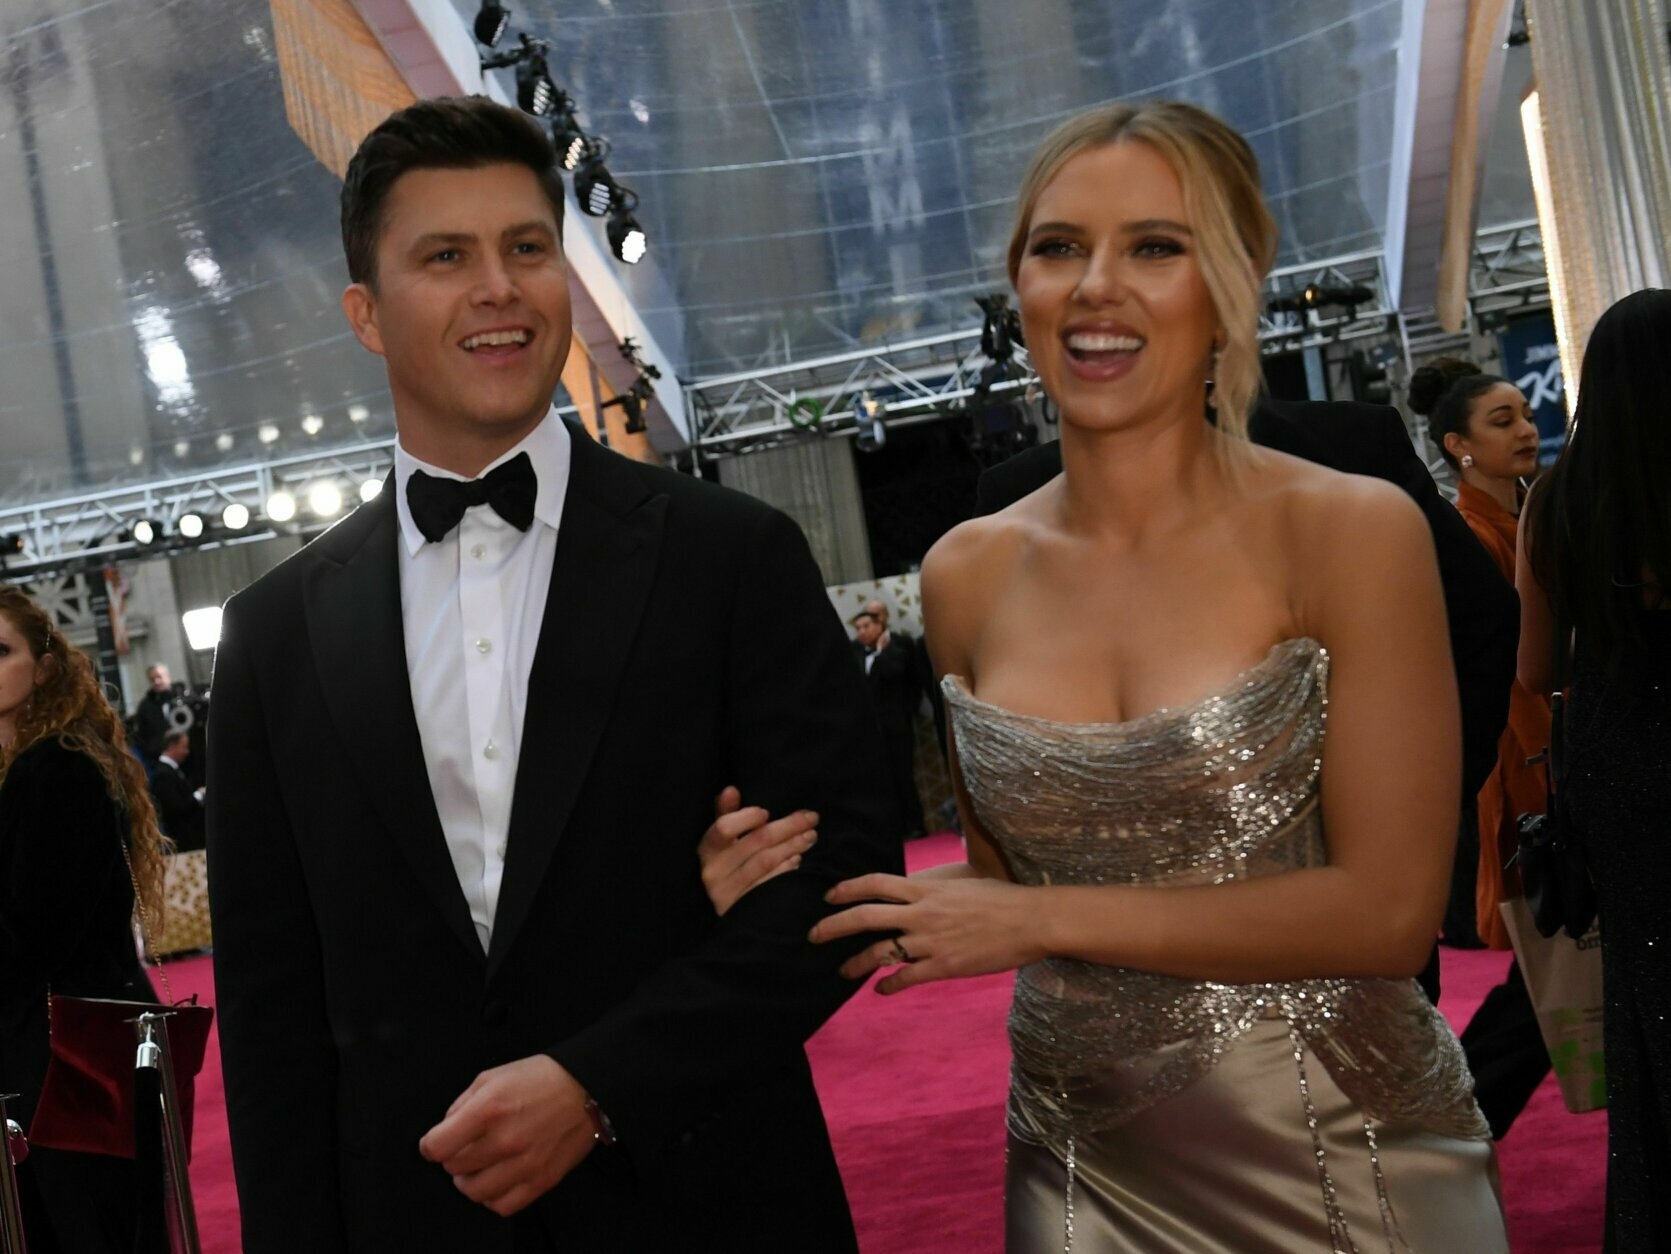 US actress Scarlett Johansson arrives with husband Colin Jost for the 92nd Oscars at the Dolby Theatre in Hollywood, California on February 9, 2020. (Photo by VALERIE MACON / AFP) (Photo by VALERIE MACON/AFP via Getty Images)